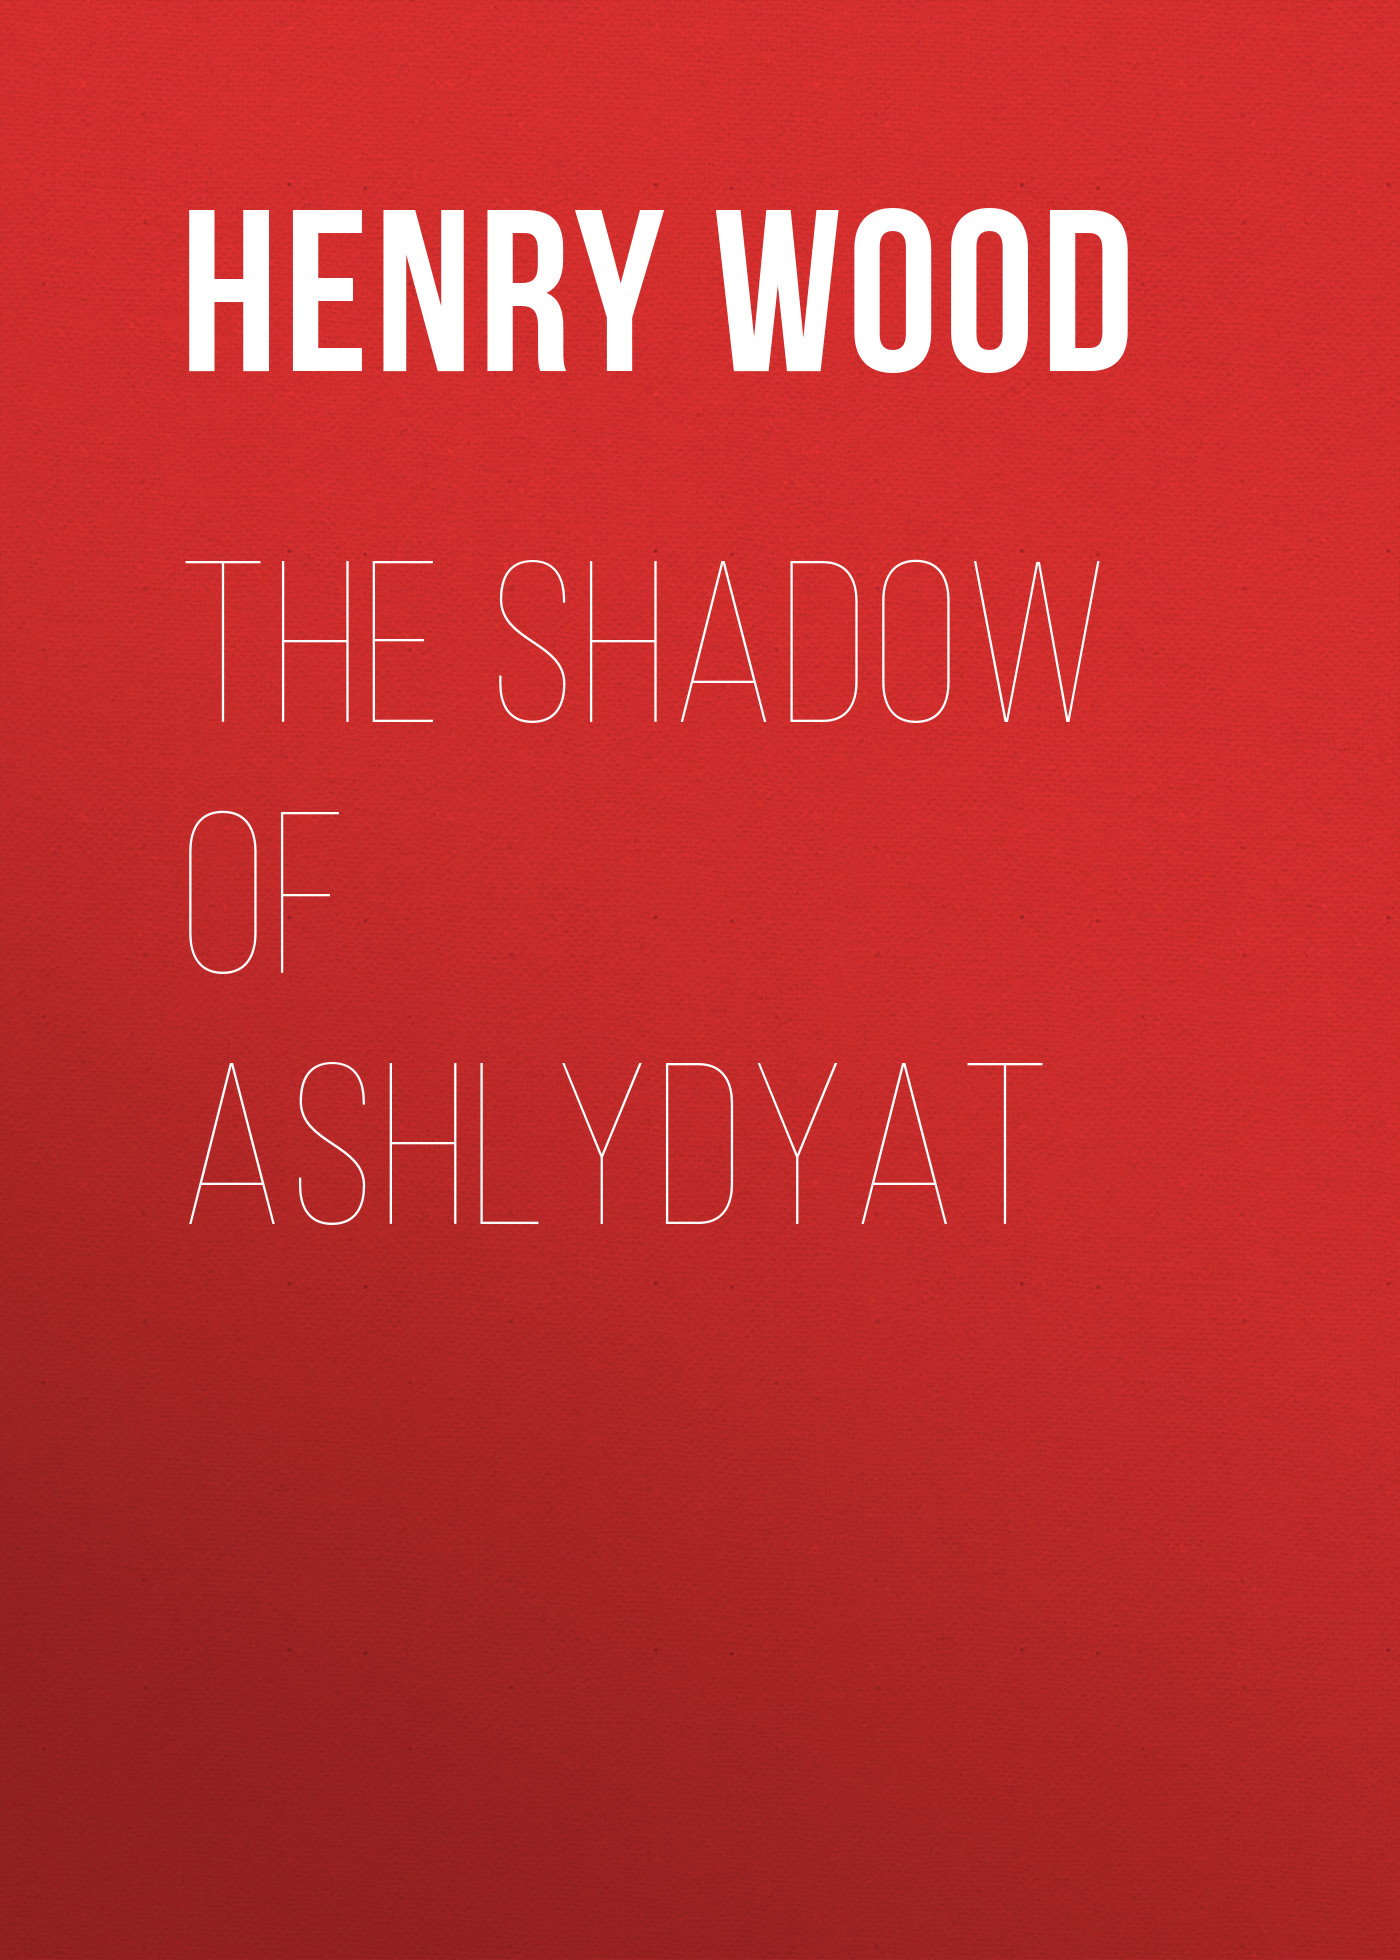 Henry Wood The Shadow of Ashlydyat henry wood east lynne